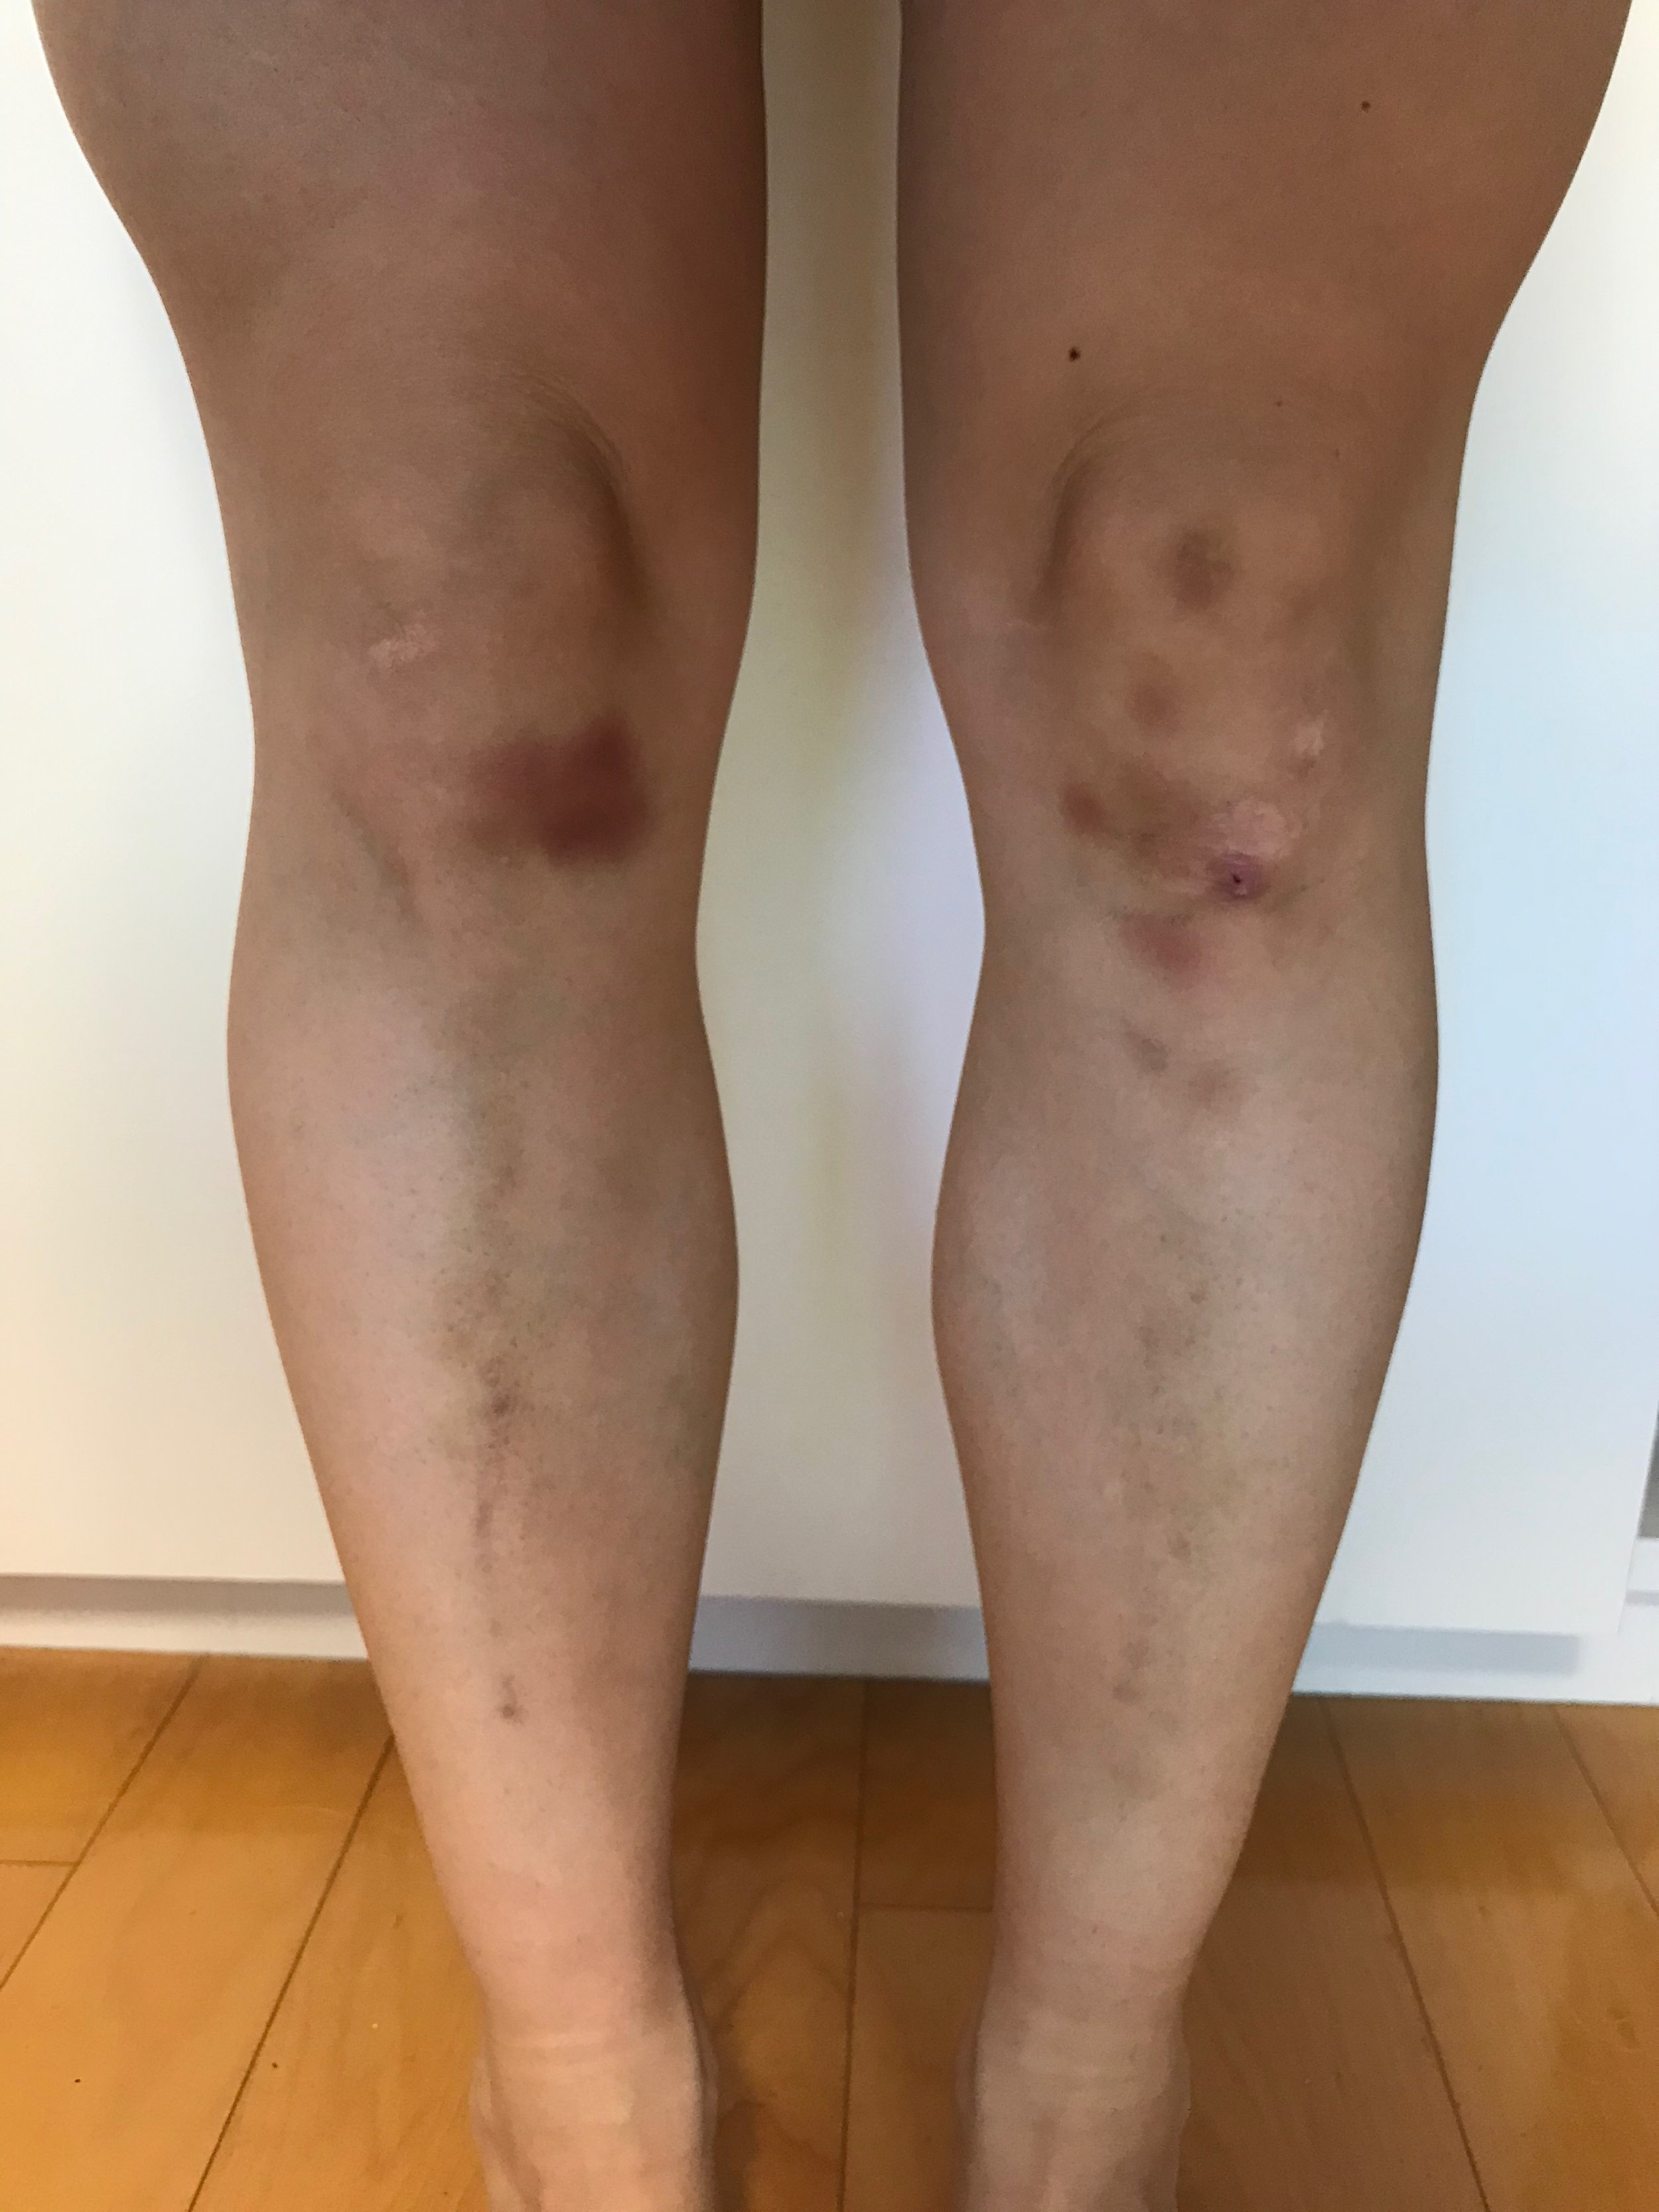 bruised knees.jpg